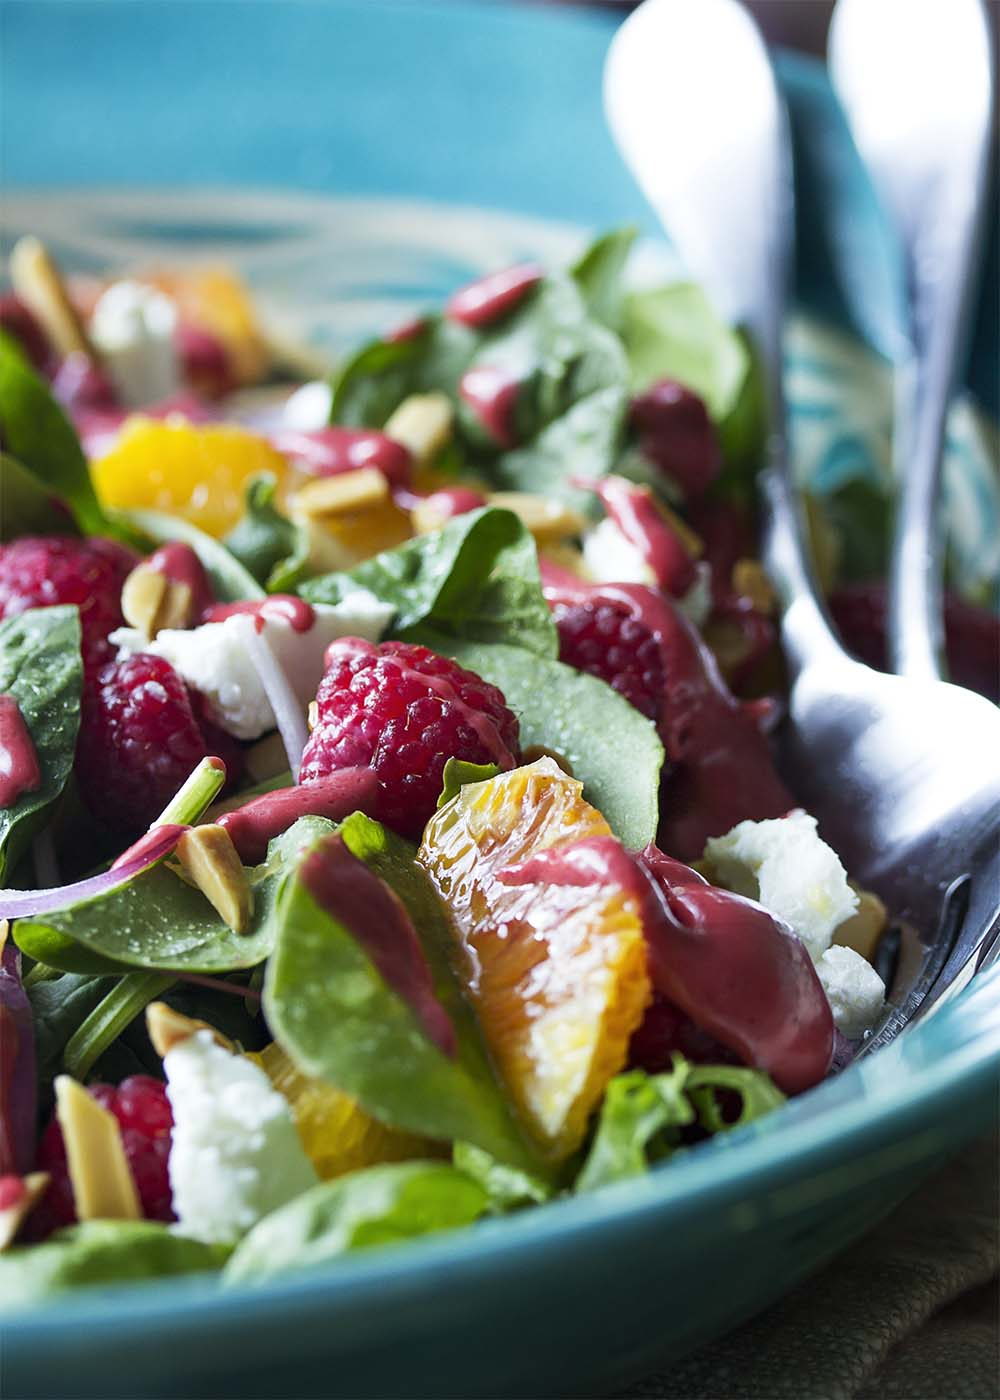 Close up of a serving bowl of raspberry salad with mixed greens, oranges, goat cheese, and almonds.